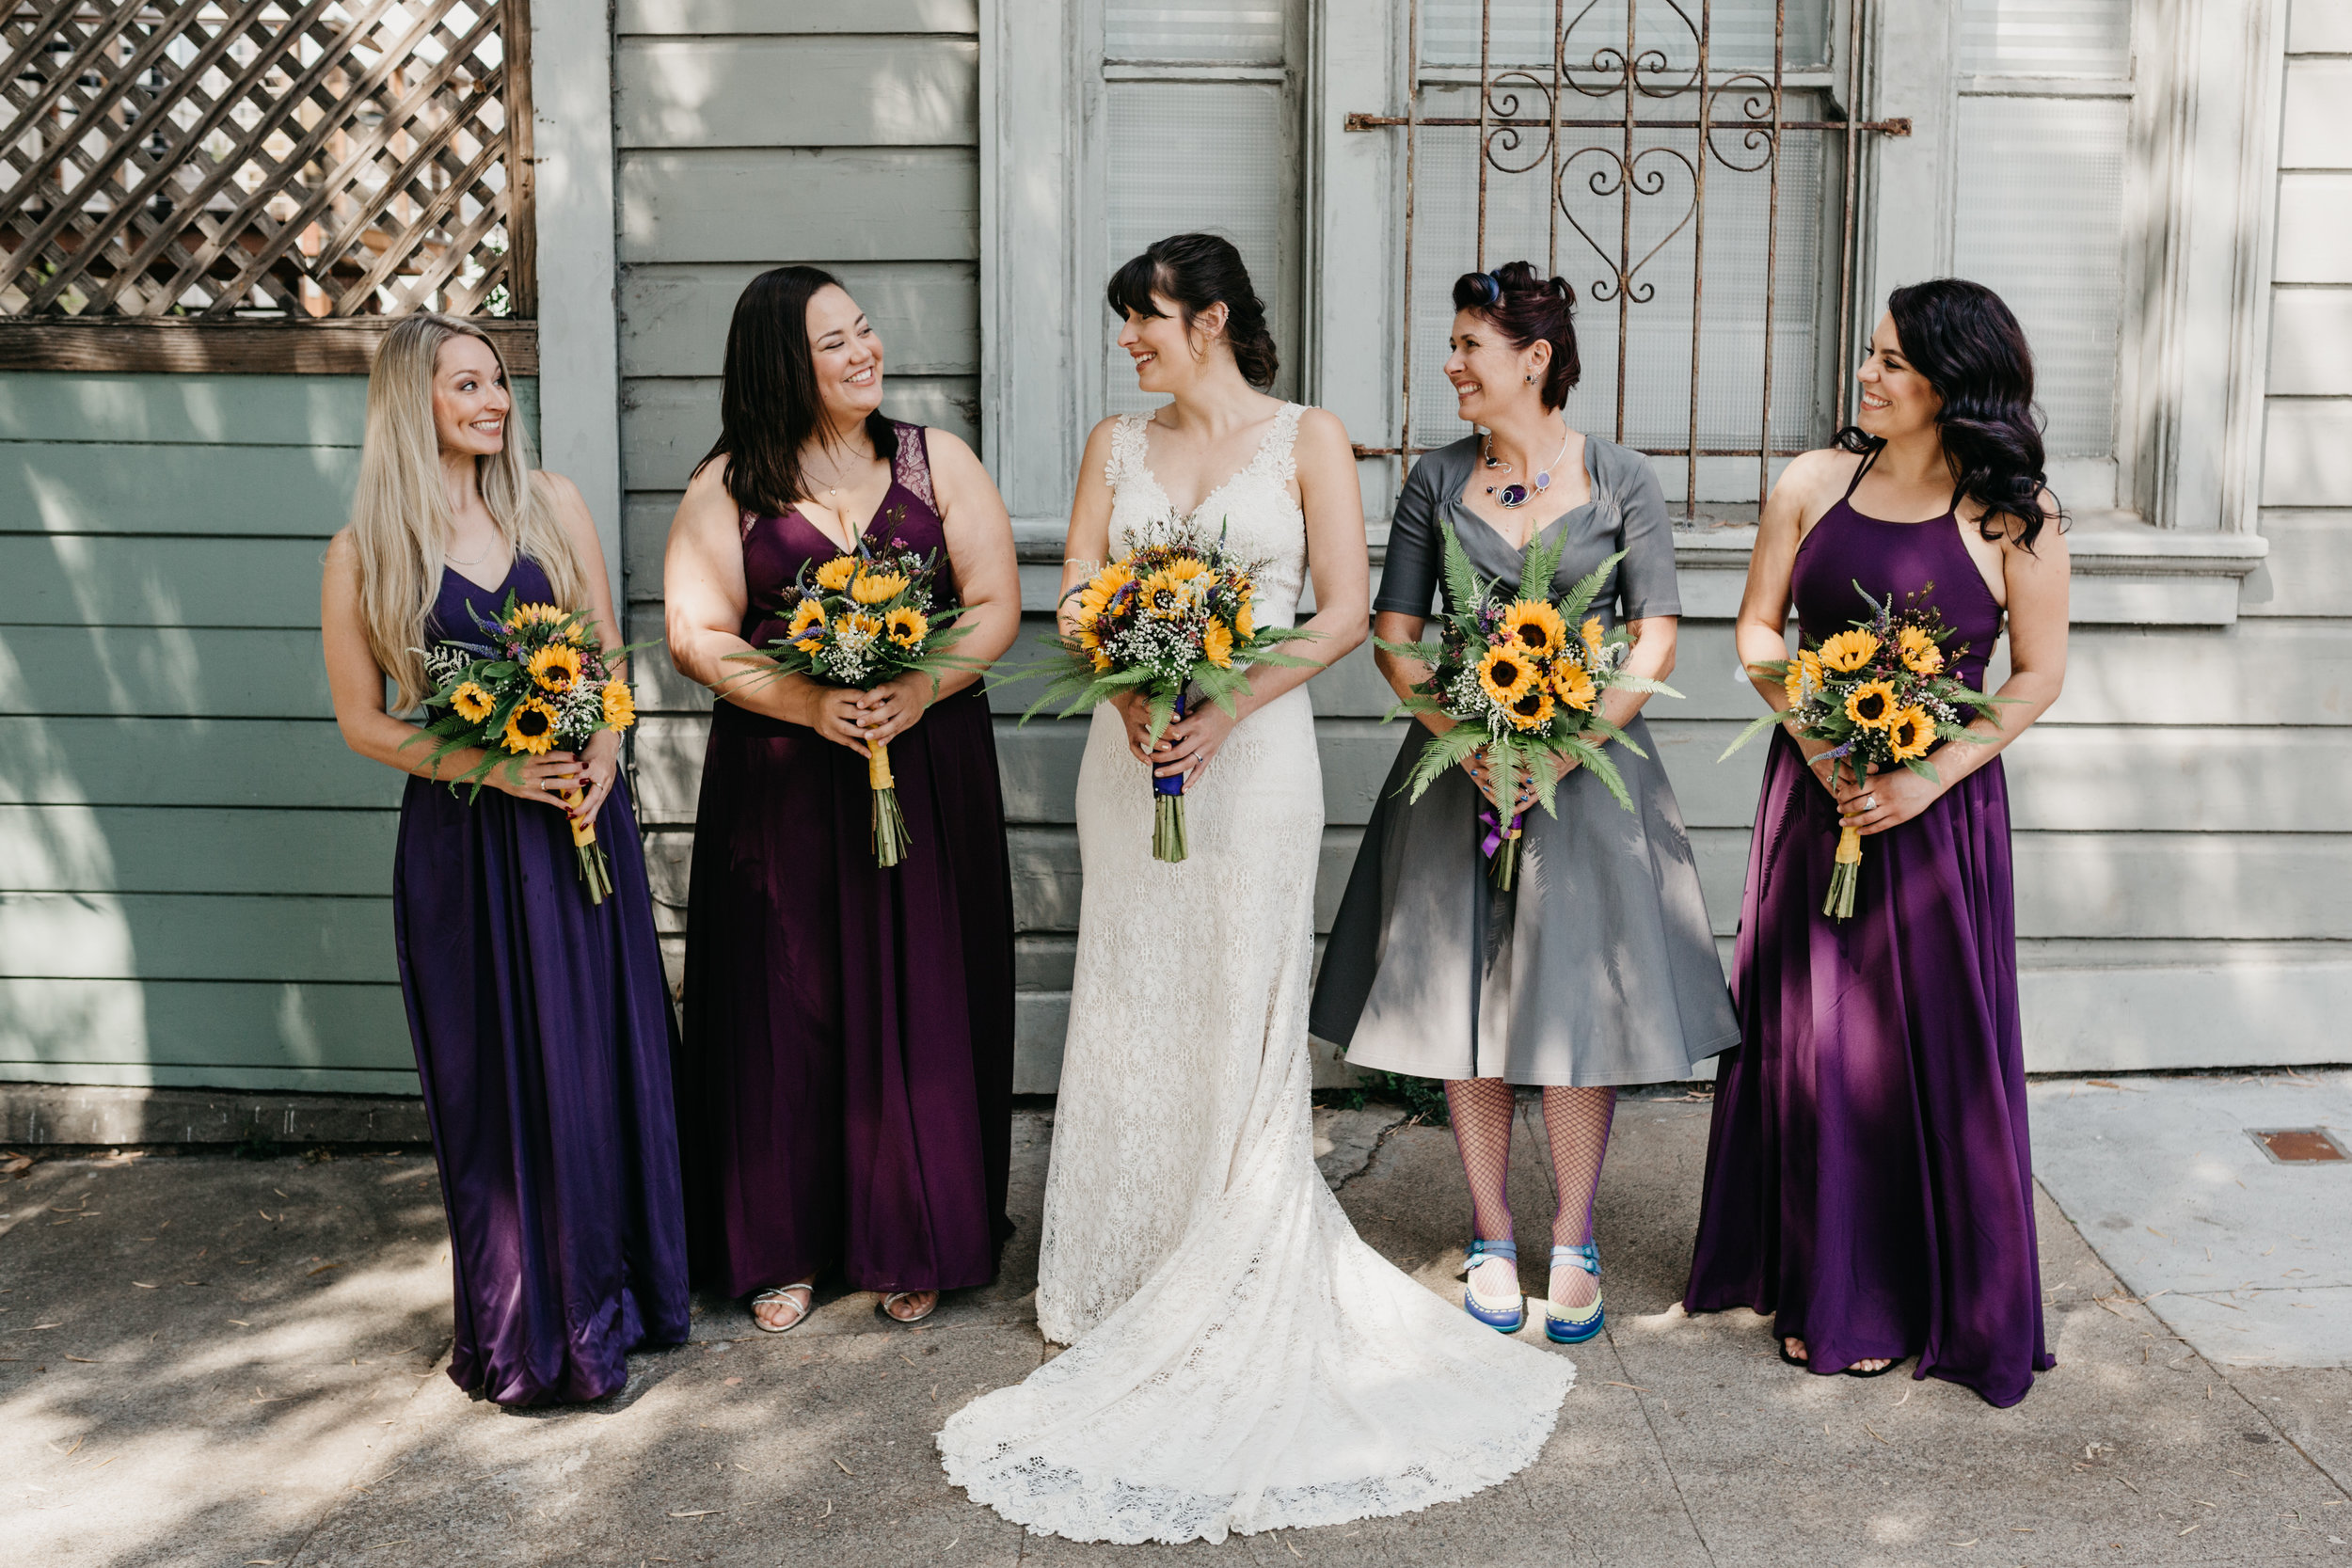 B+E_Bridesmaid33.jpg